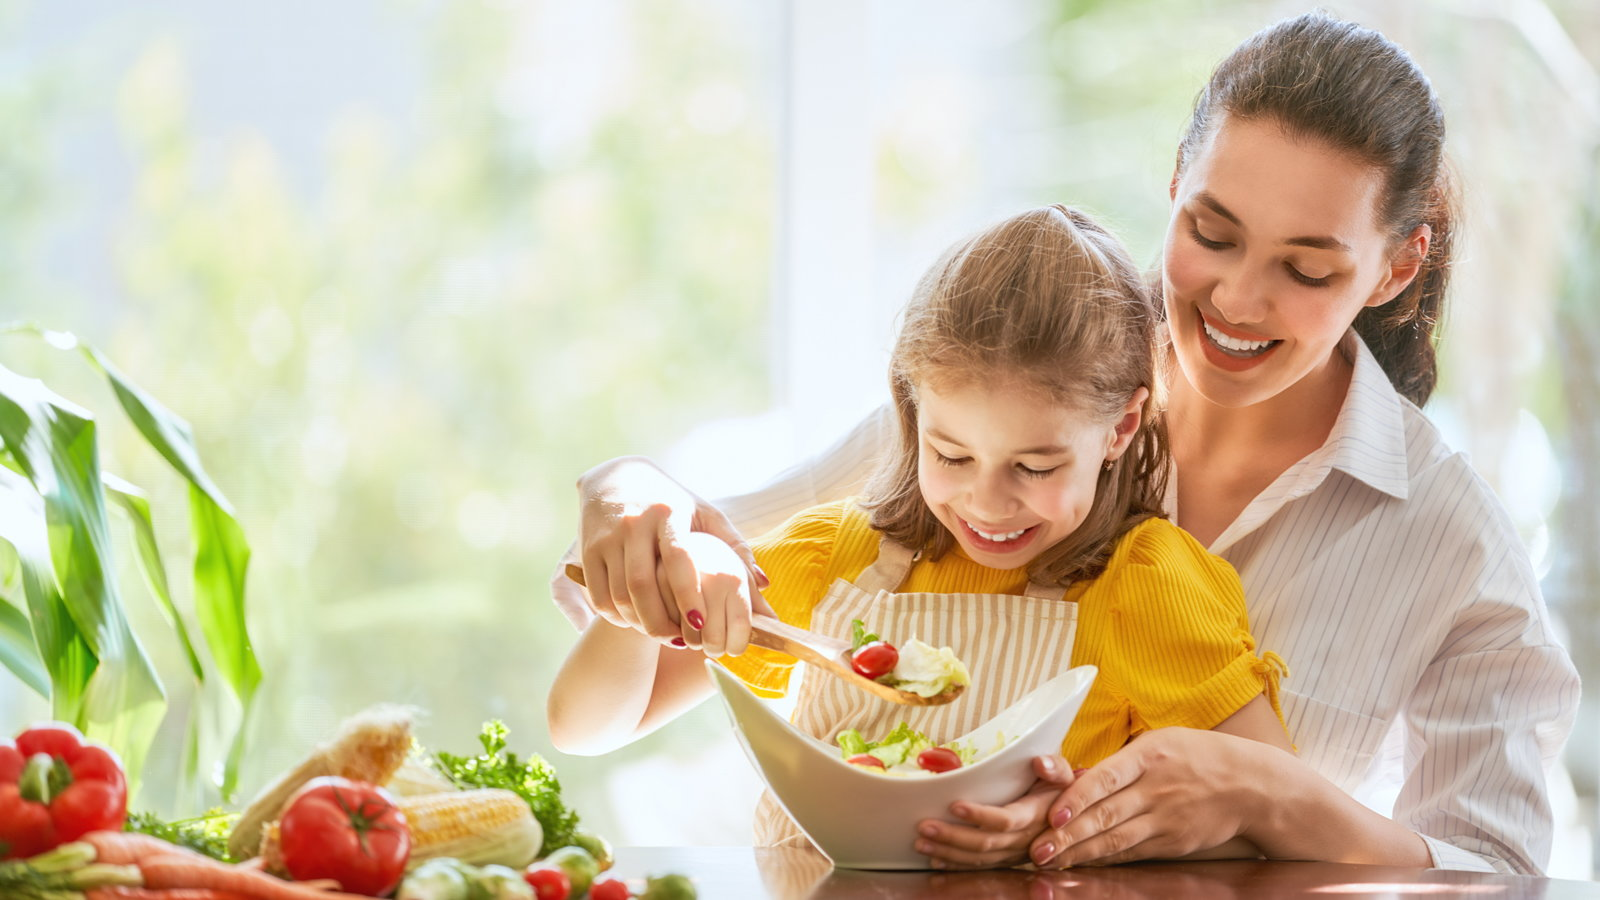 mother making salad with daughter